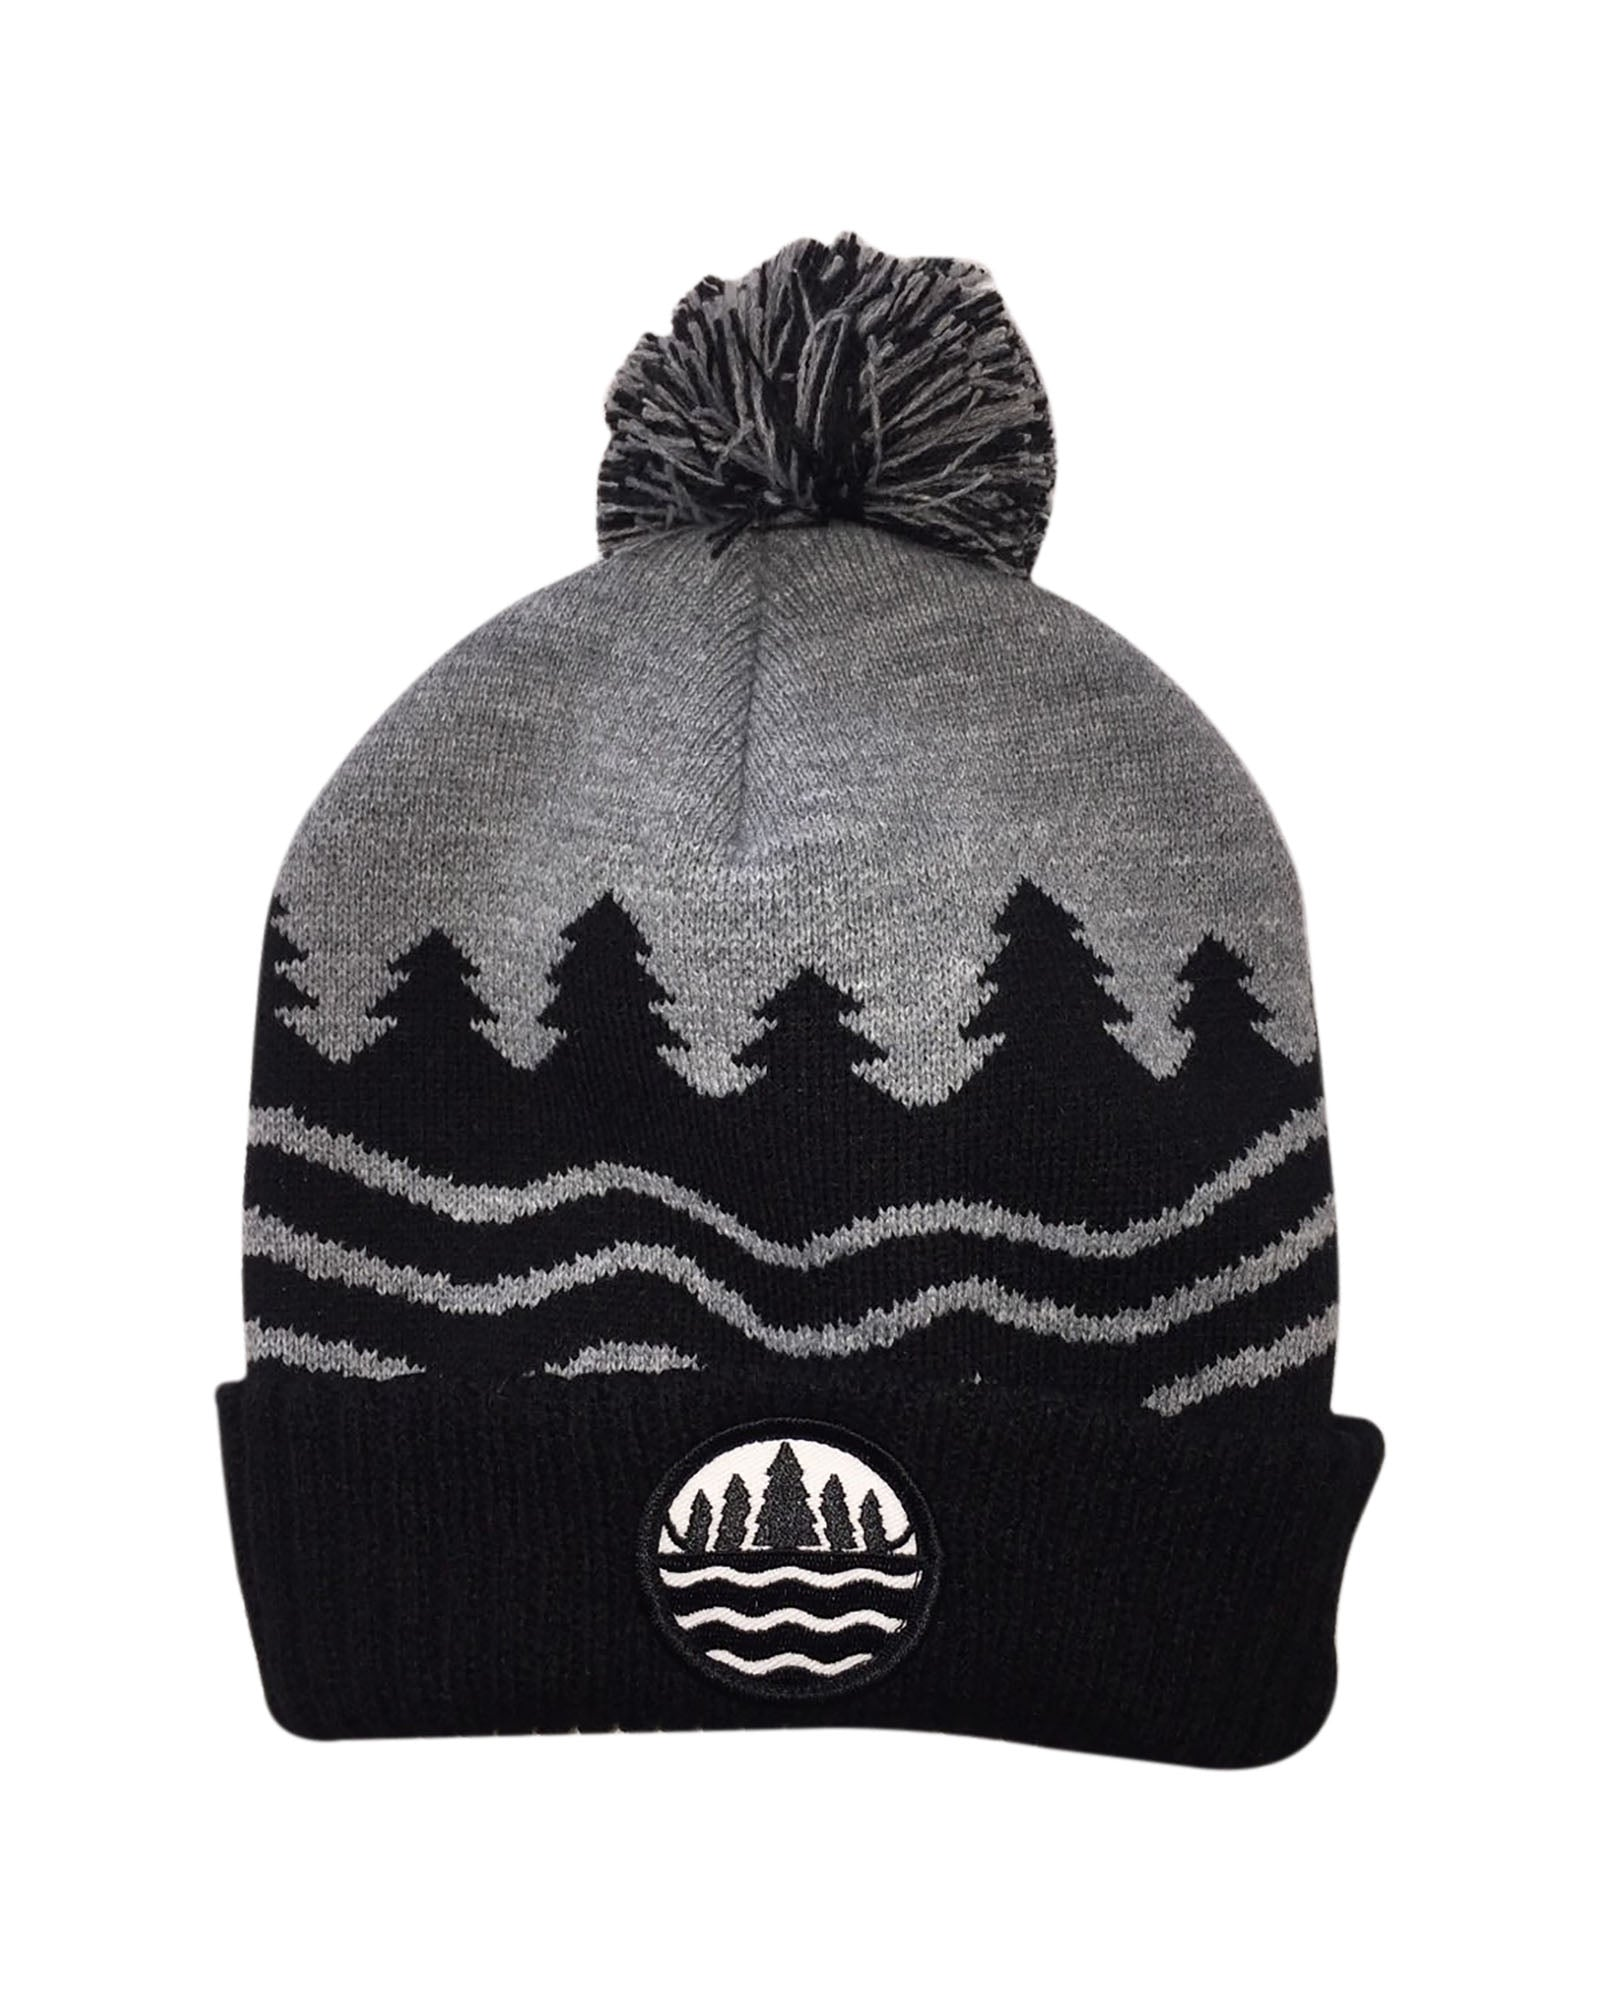 ee8aee3b728 The Great Lakes State Knitted Pom Beanie